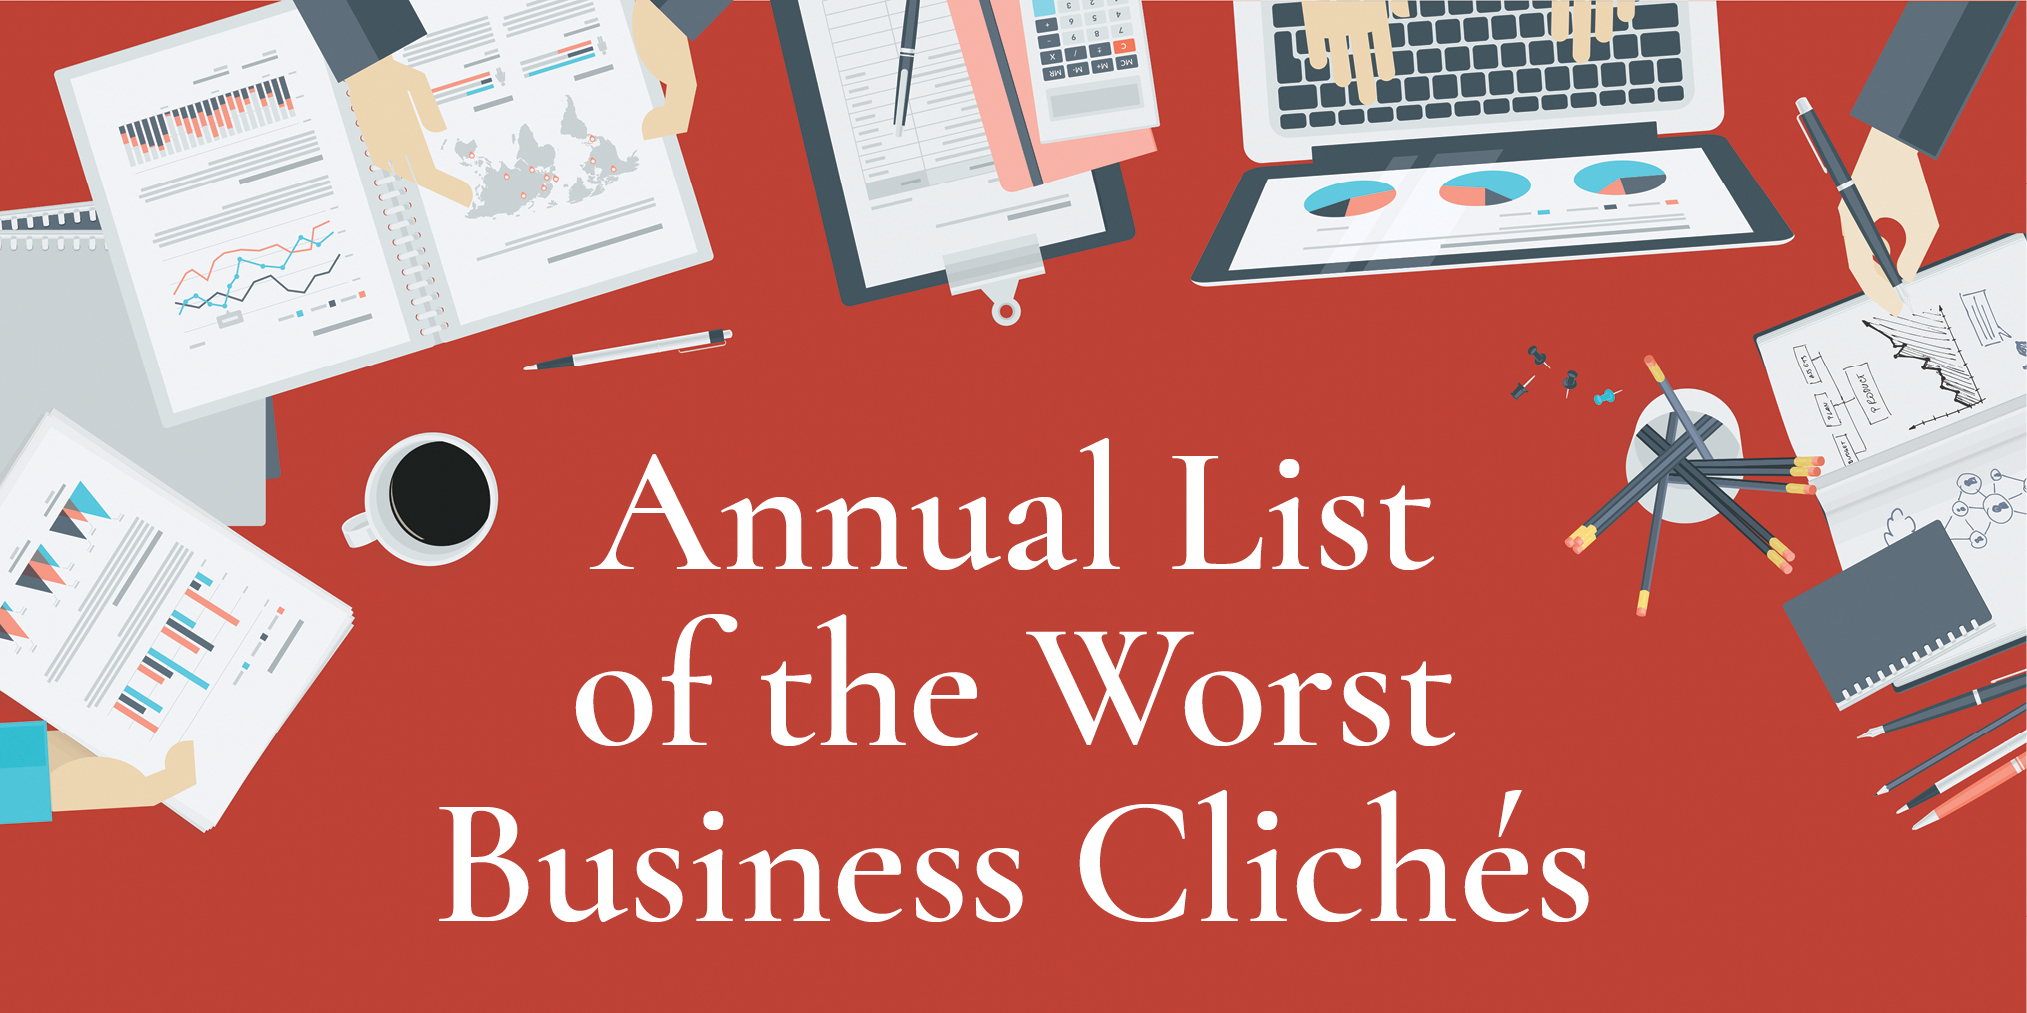 Annual List of Worst Business Cliches